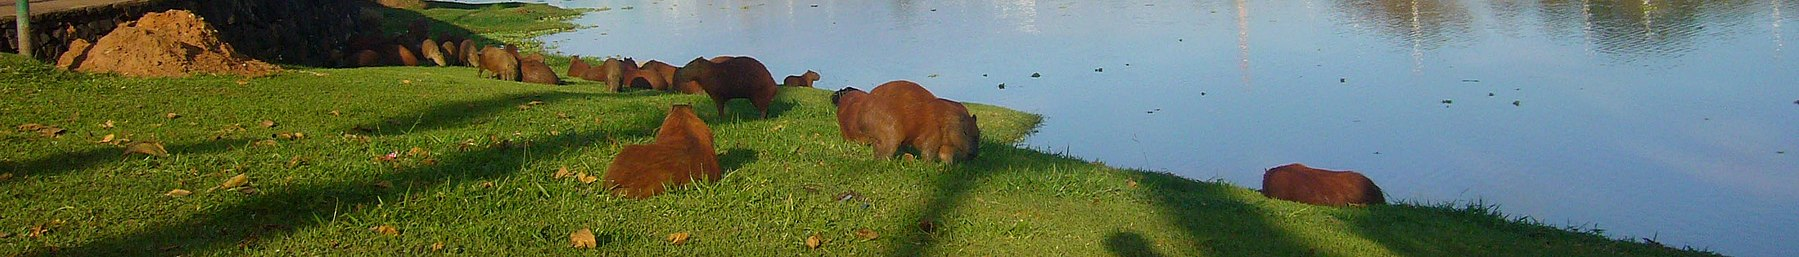 WV banner NW Sao Paulo Capybaras on riverbank.jpg